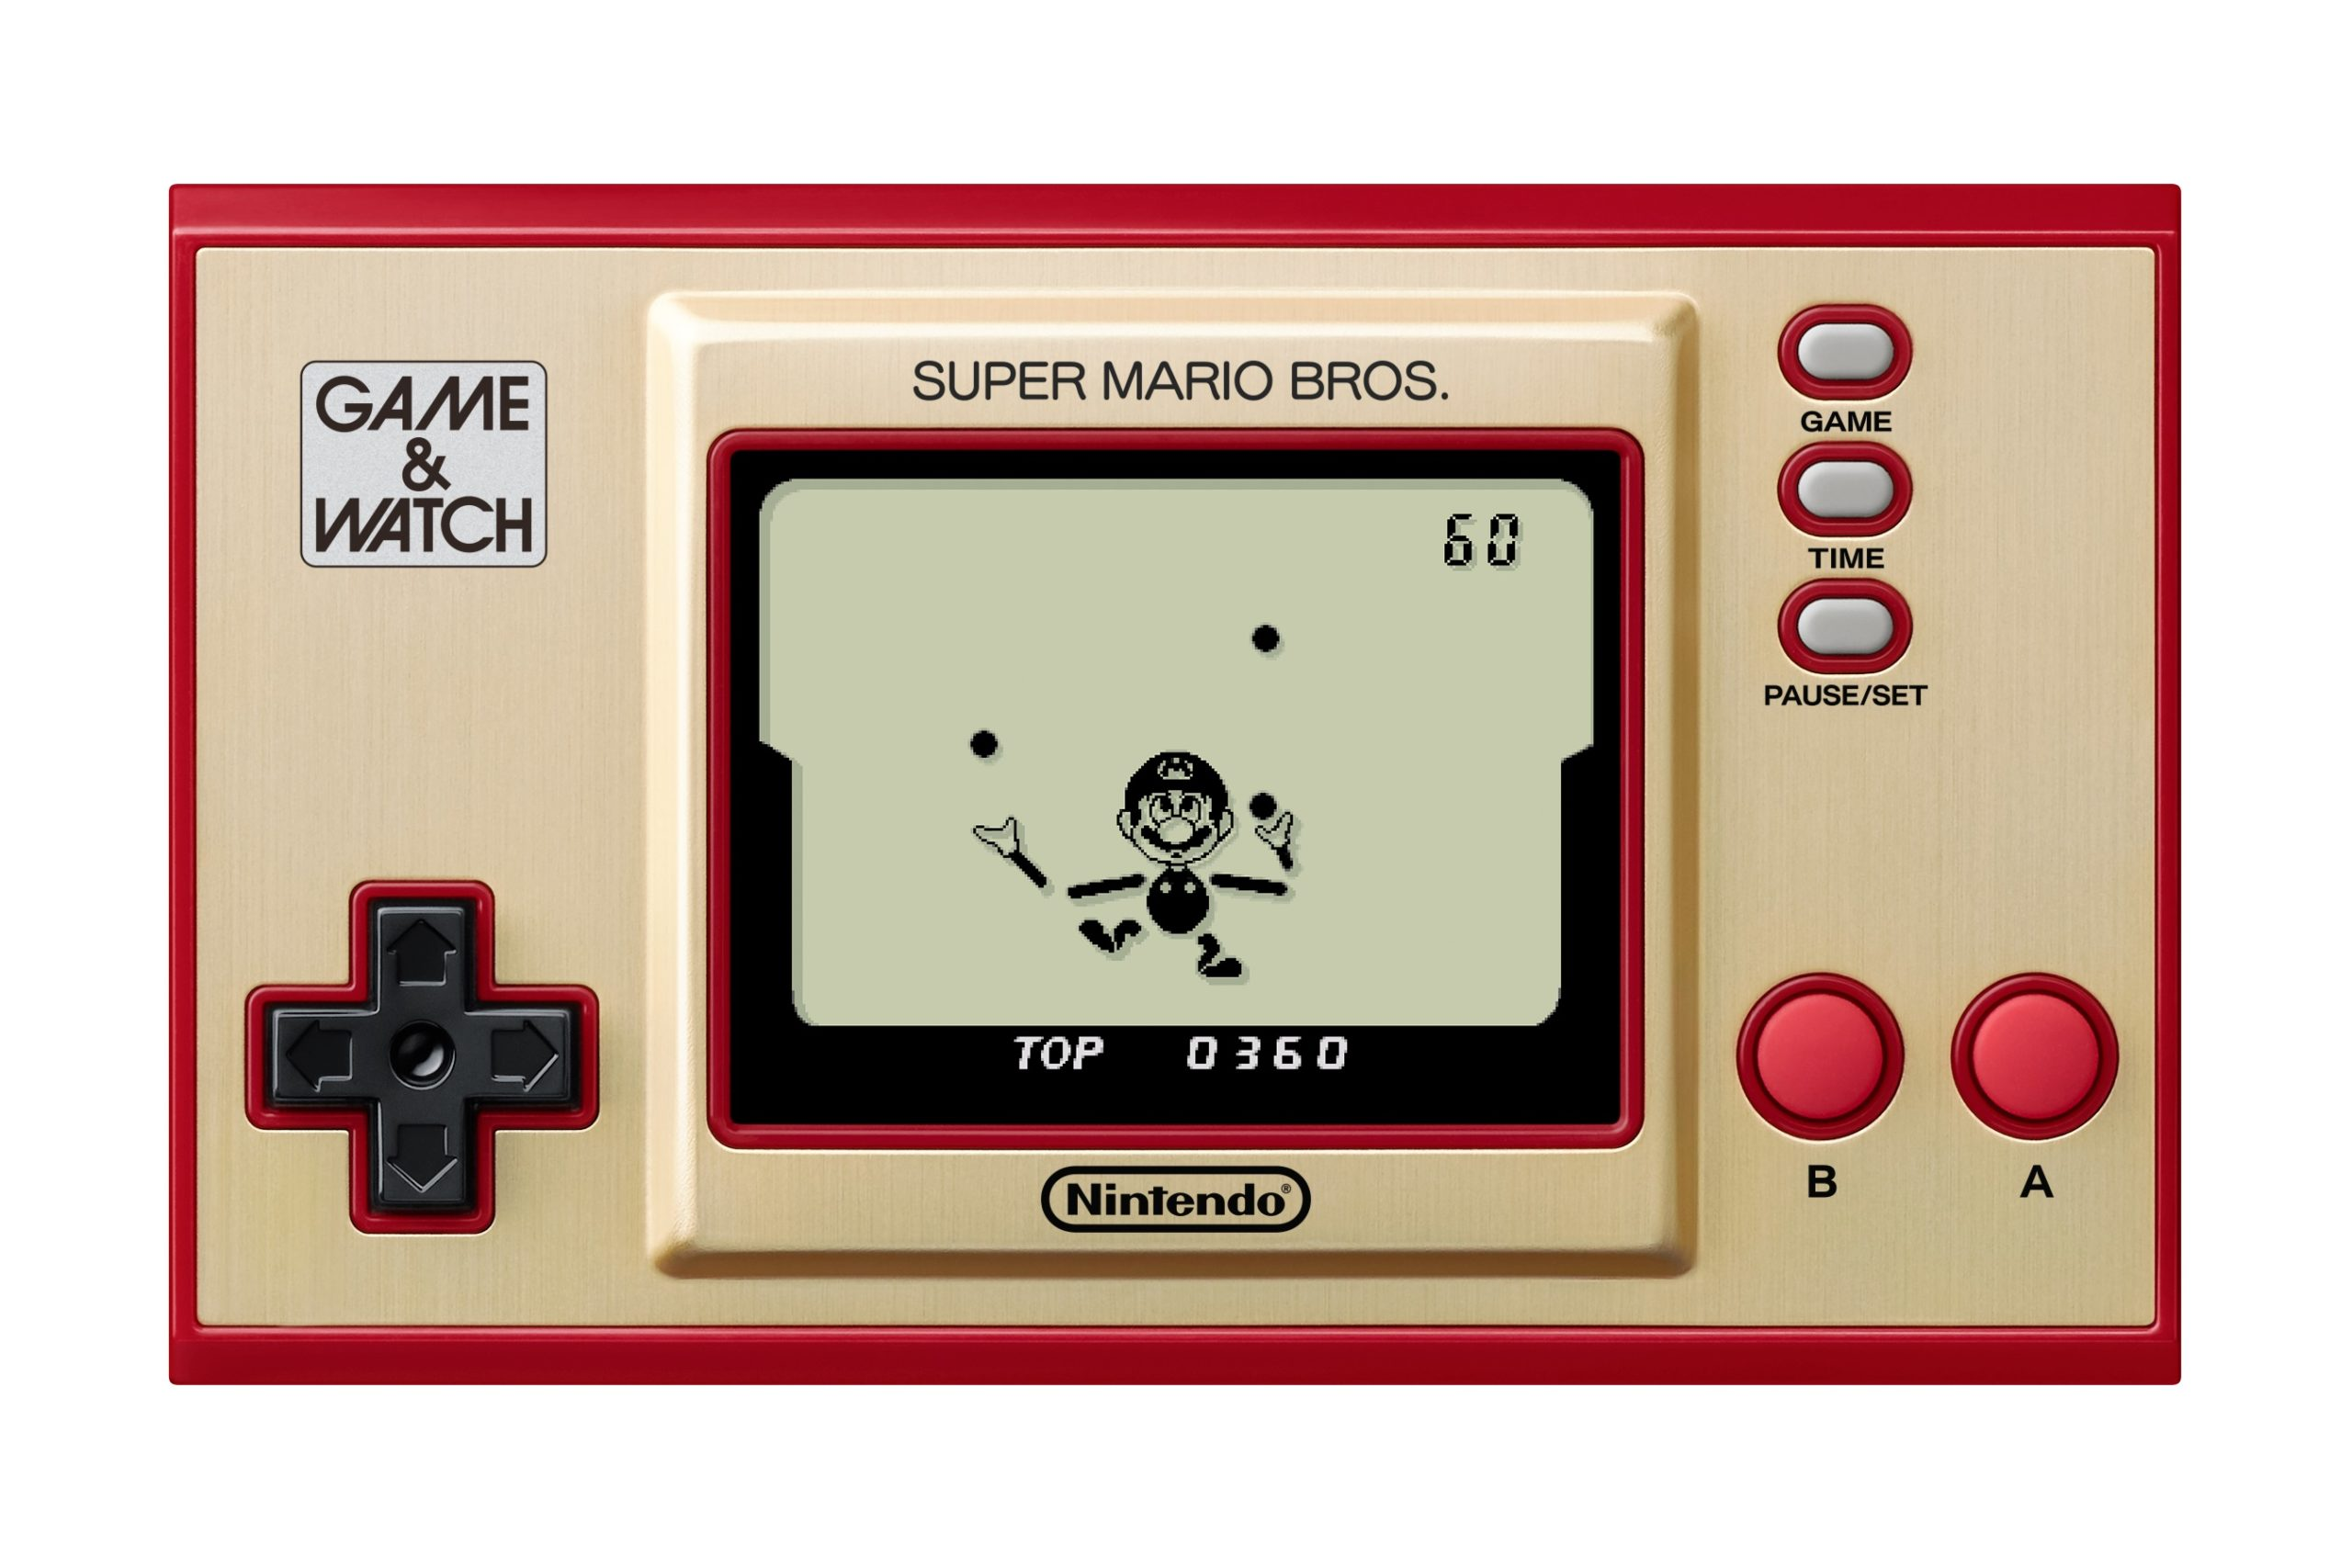 Game & Watch: Ball Game